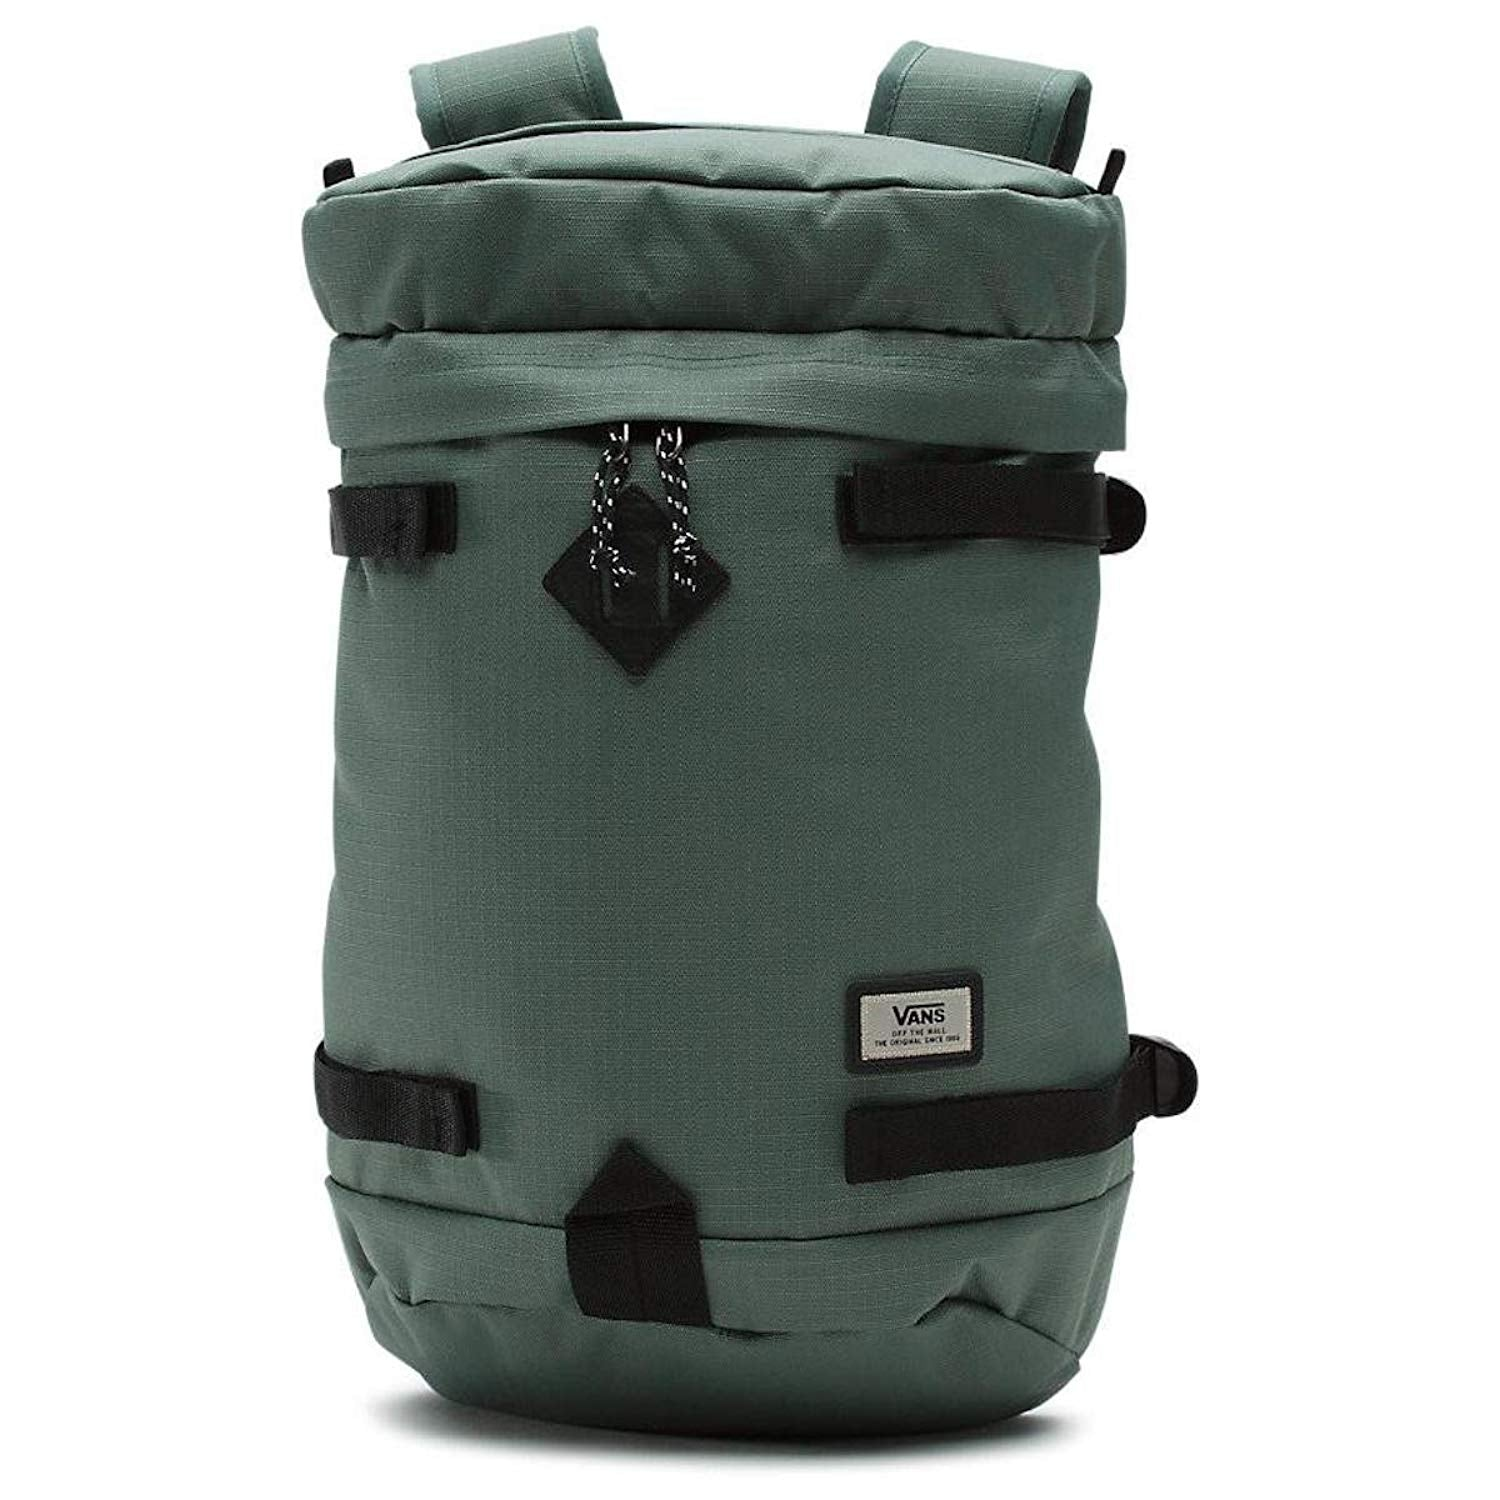 Vans Clamber Laurel Wreath Backpack School Bag